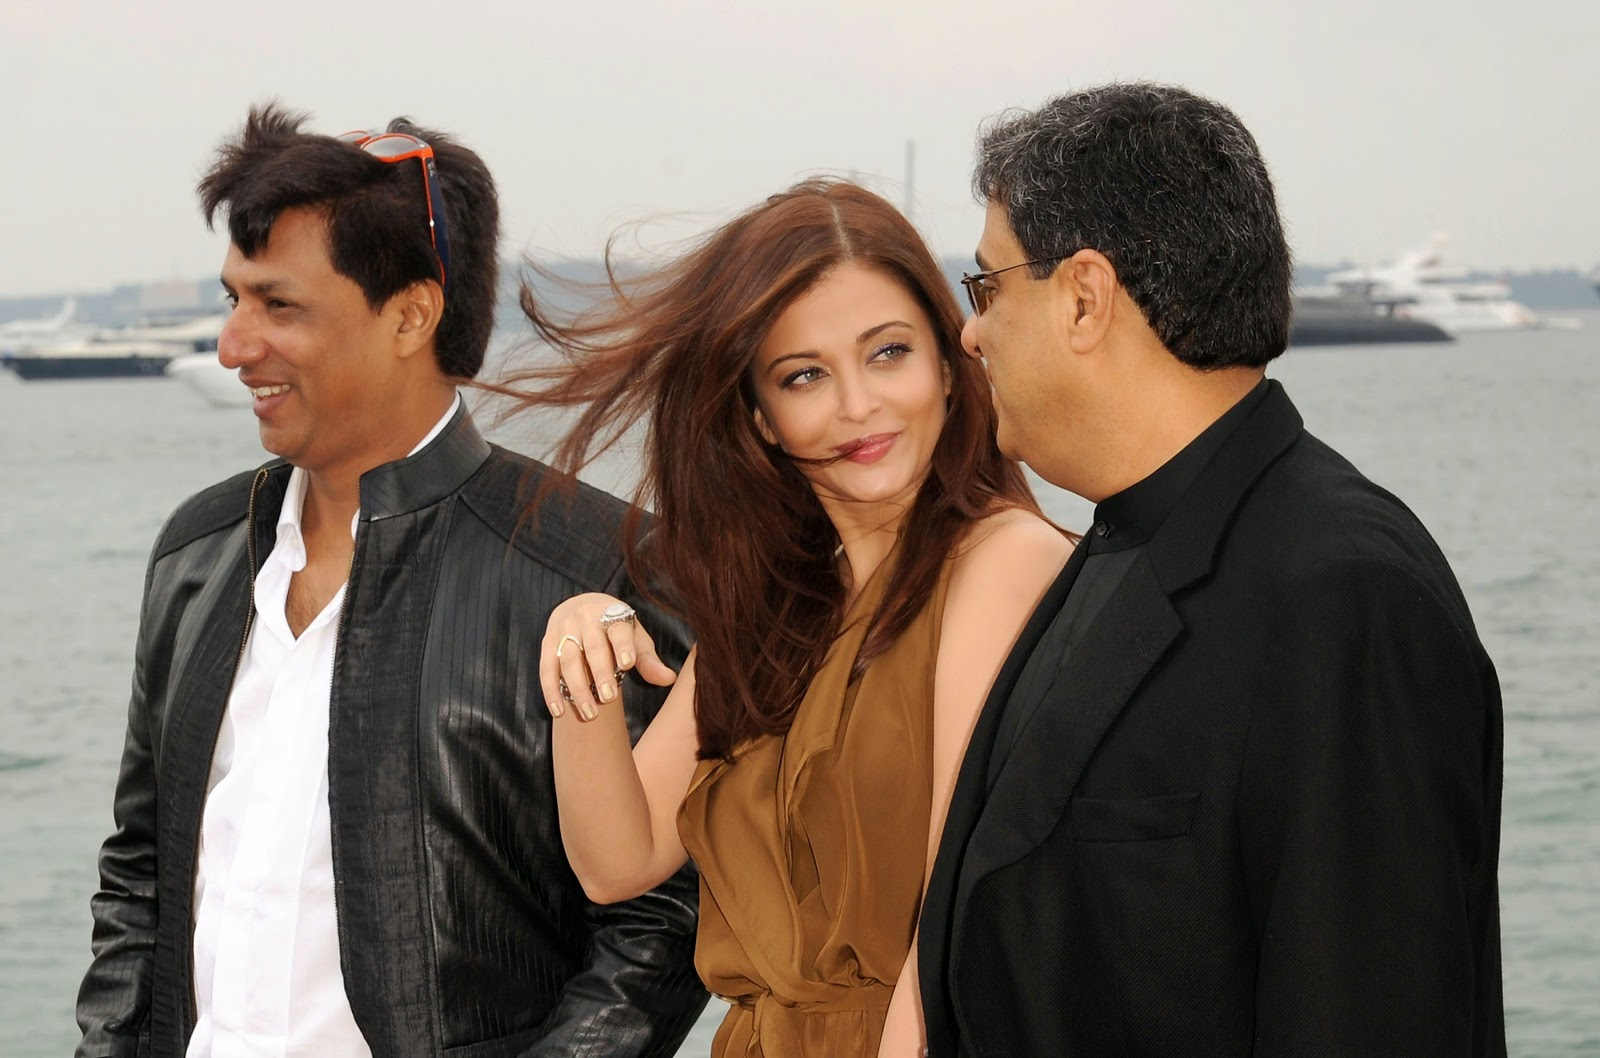 Aishwarya Rai Full HD Images - 64th Annual Cannes Film Festival - Photocall